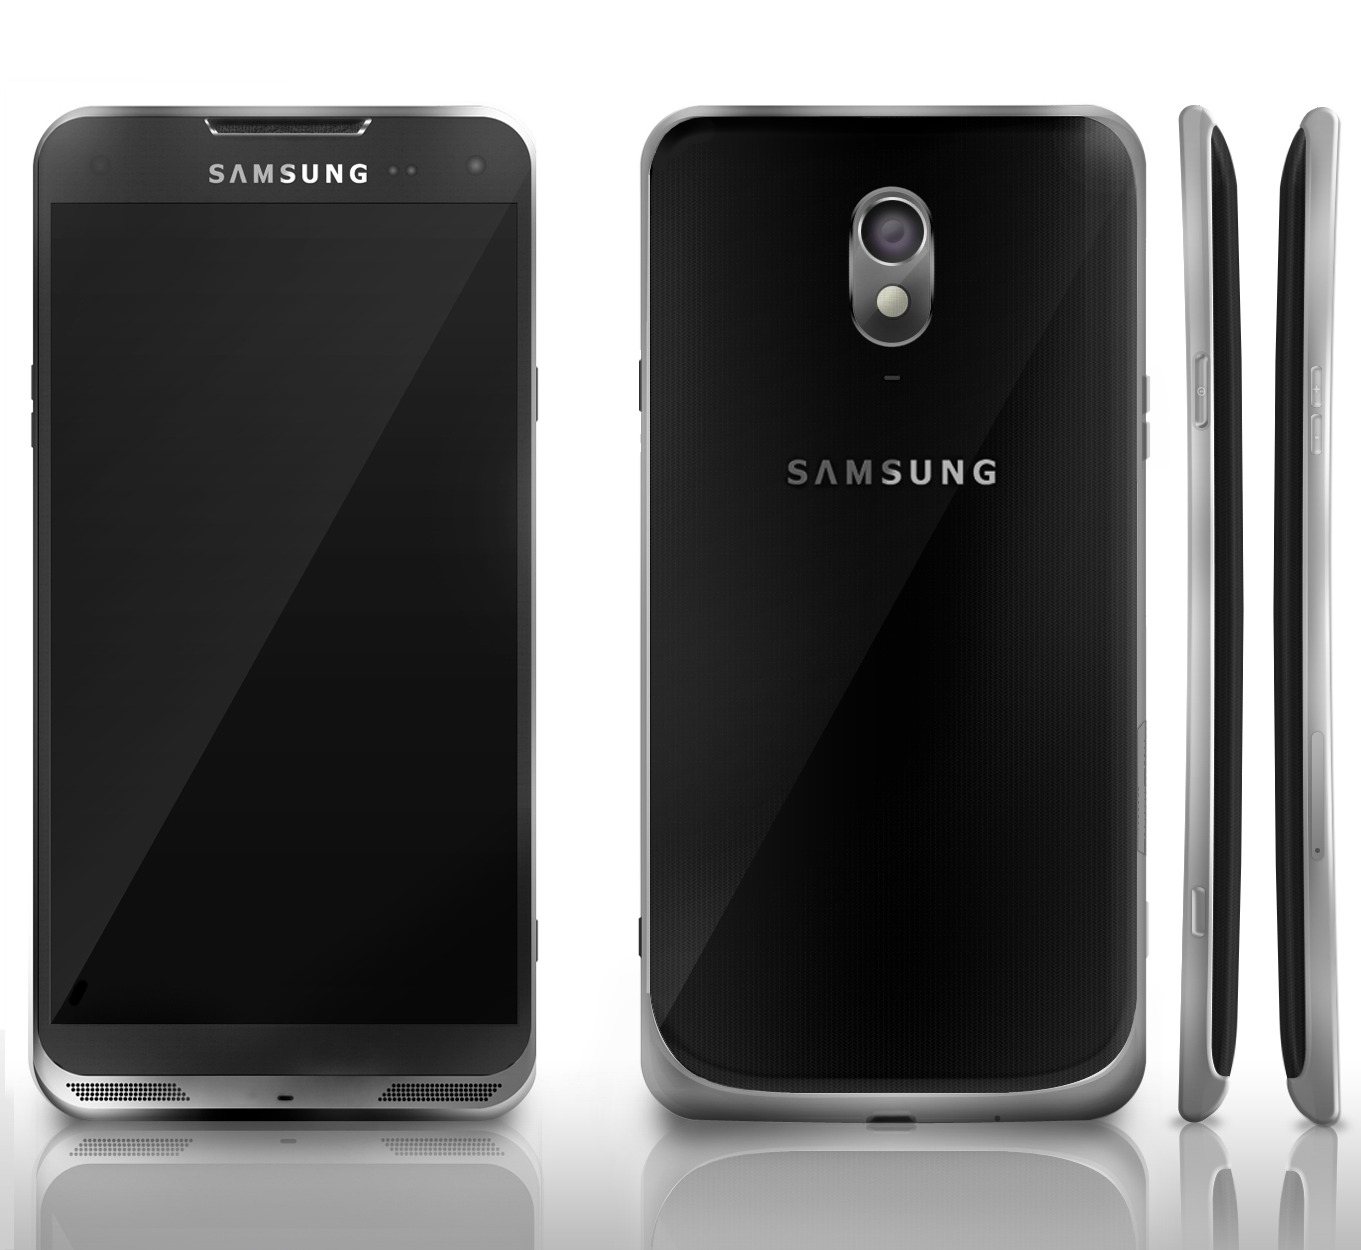 York.let's take a look at All pictures leaked for Samsung Galaxy S4